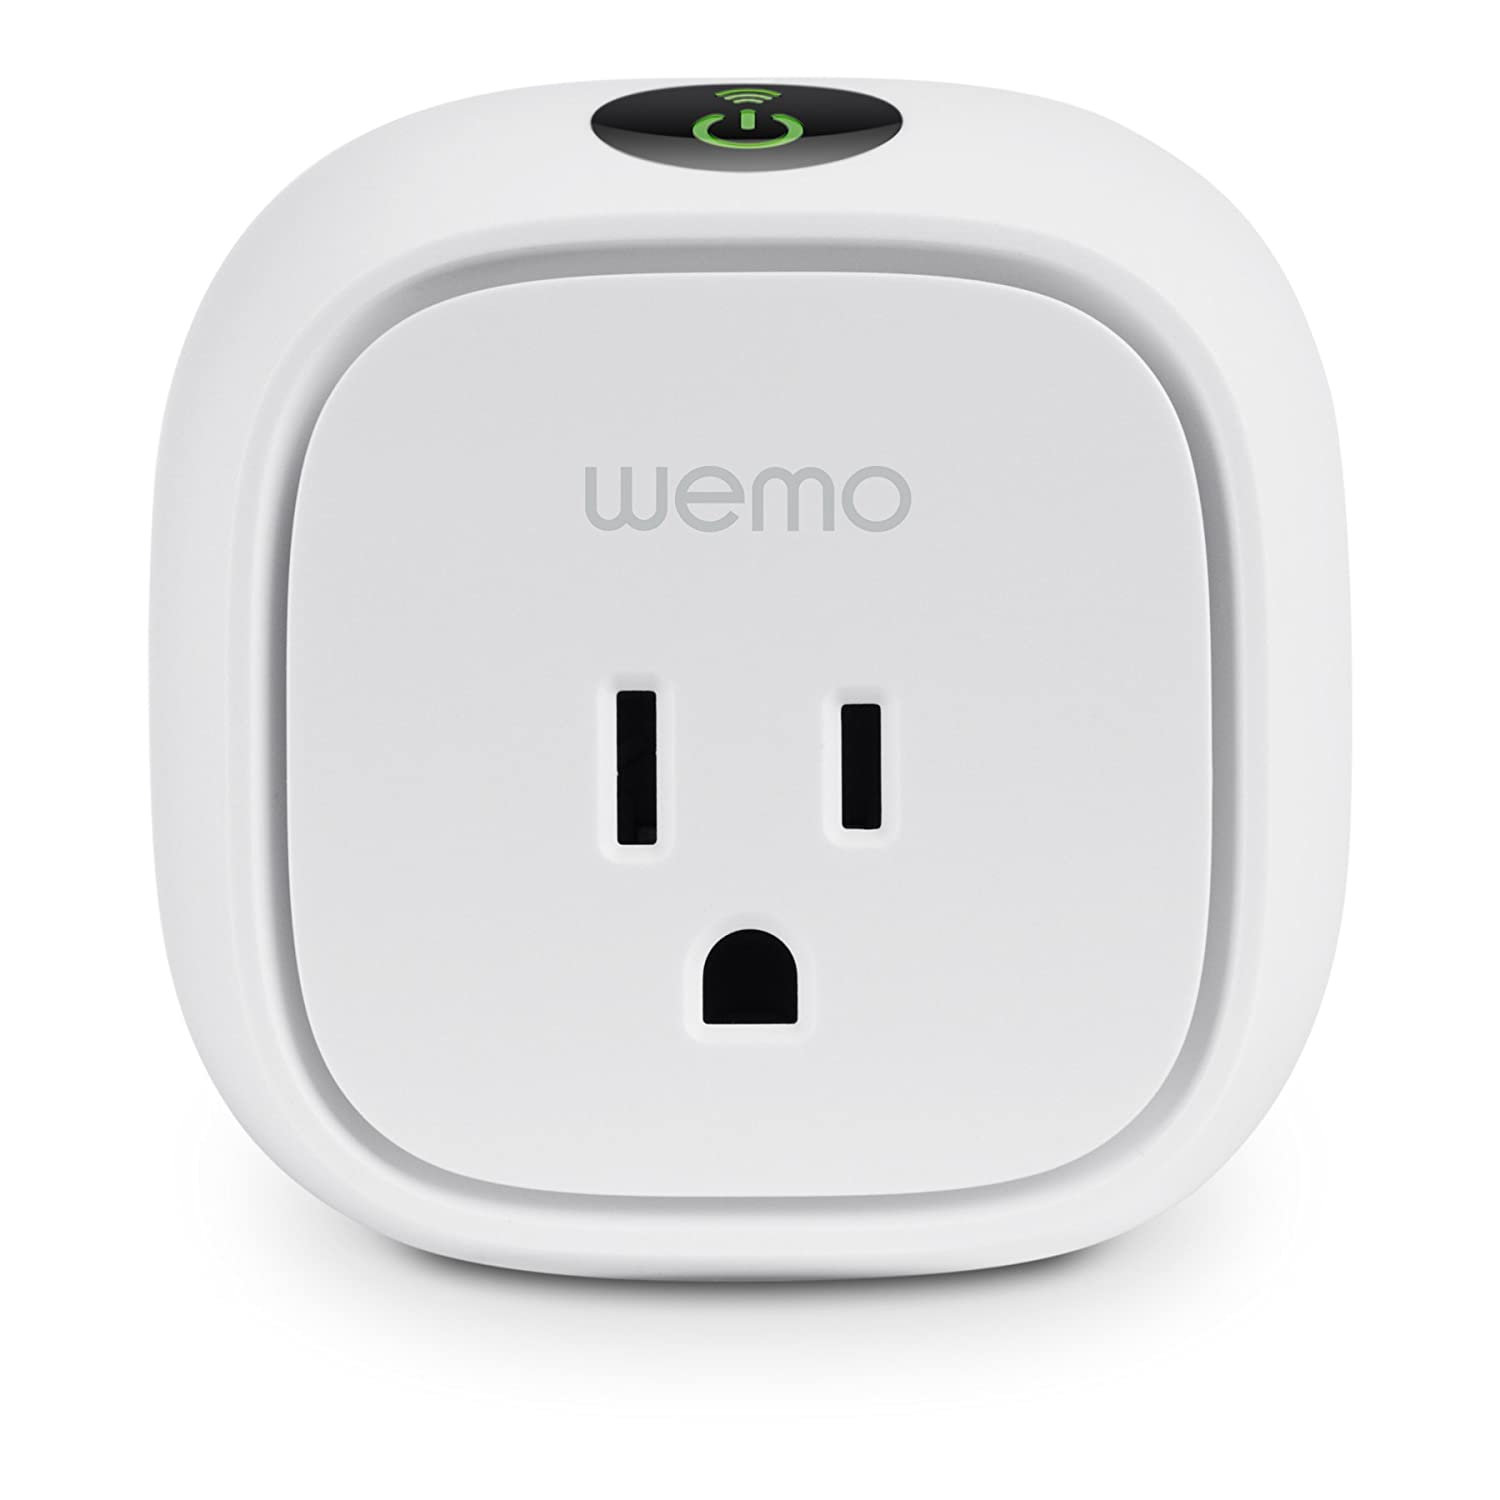 Wemo Insight WiFi Enabled Smart Plug, with Energy Monitoring, Works with Alexa (Discontinued by Manufacturer - Newer Version Available)